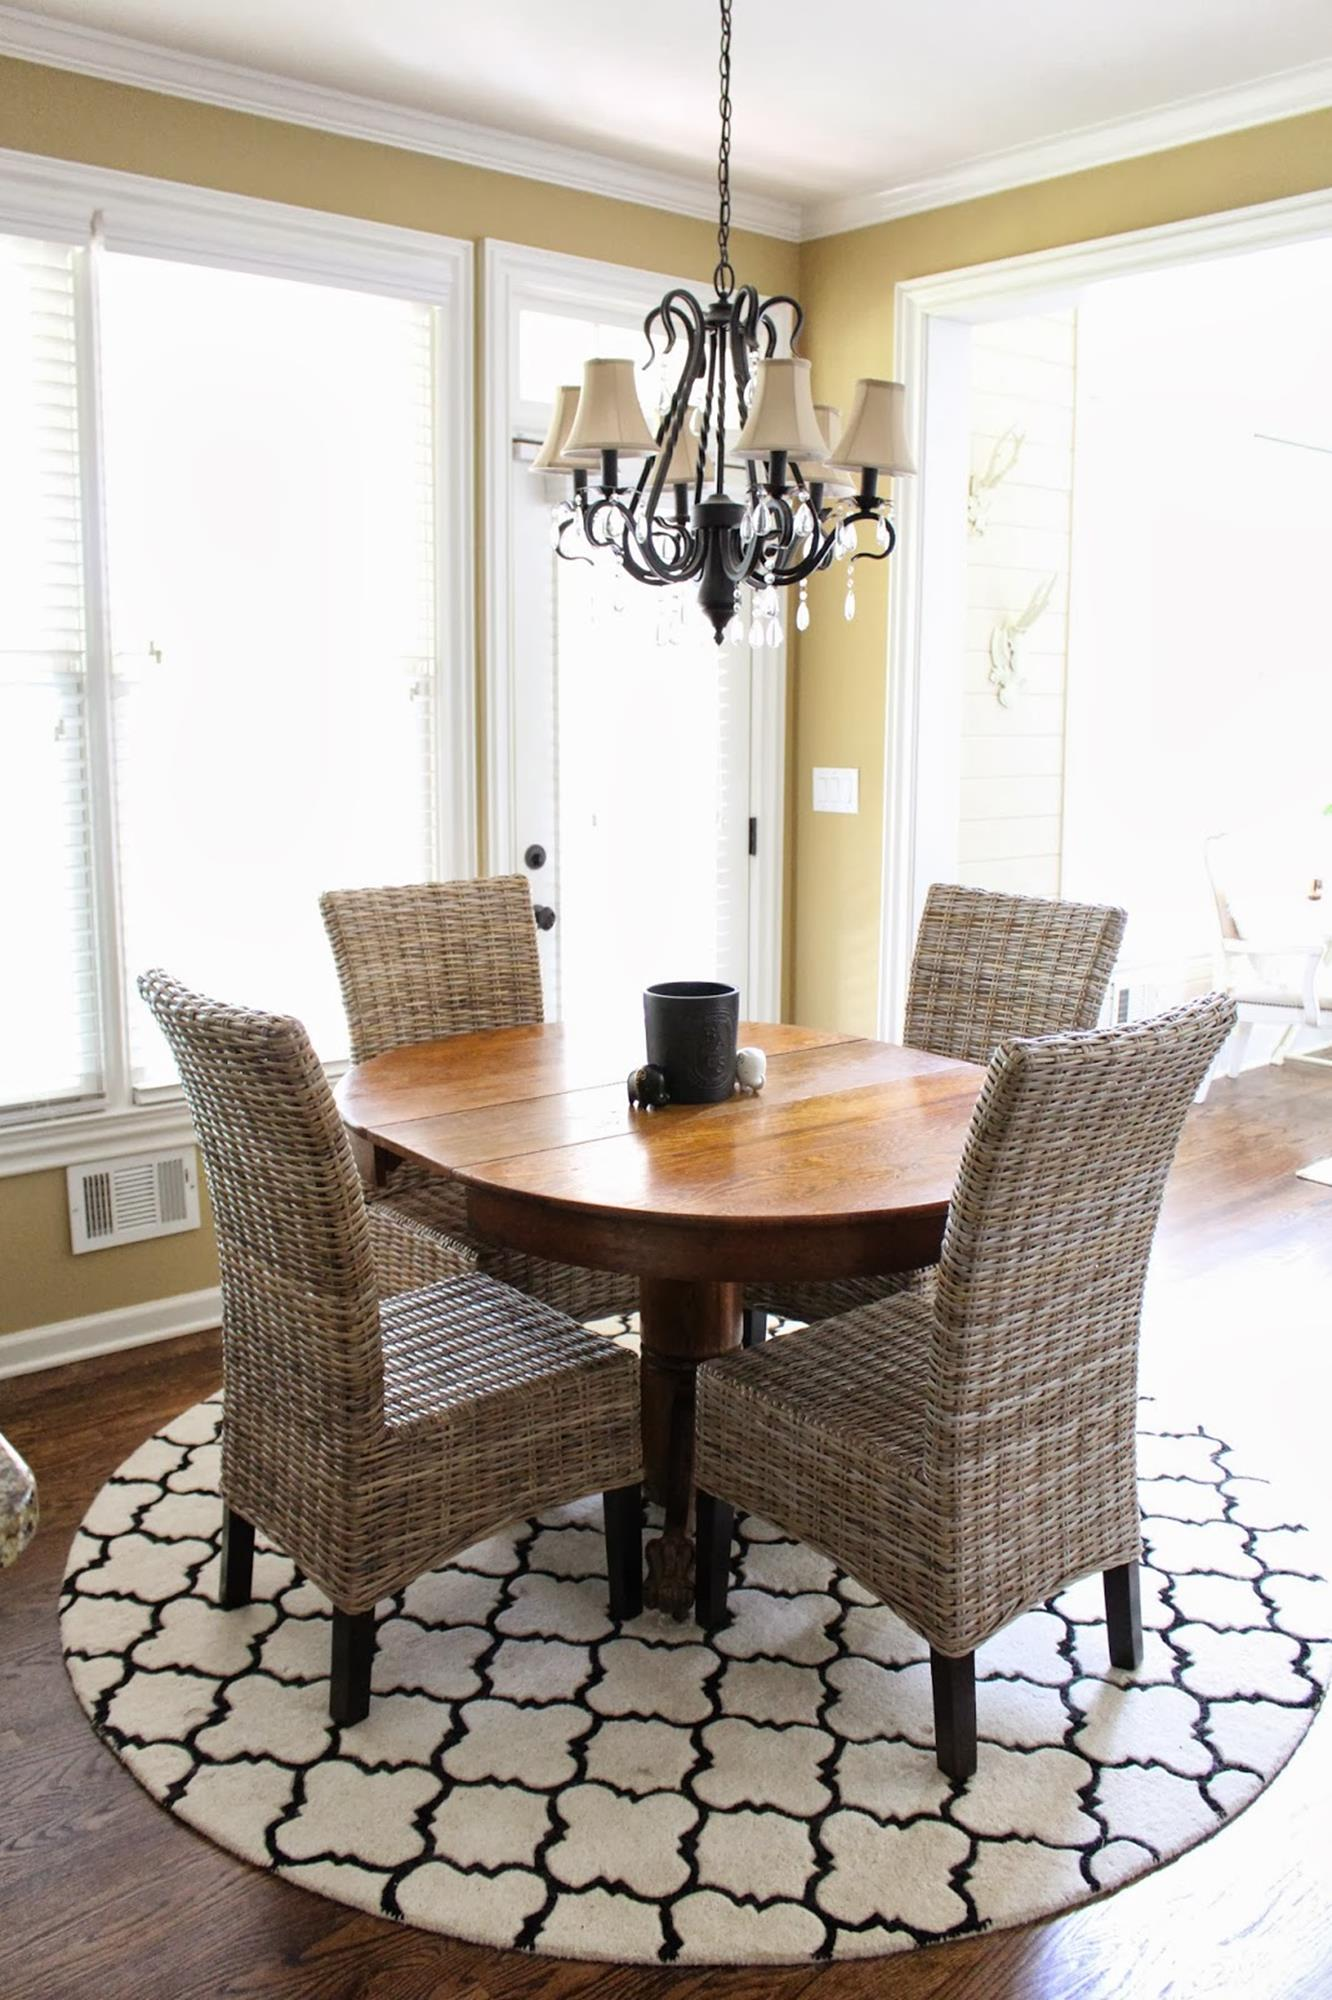 best cheap rugs for under kitchen table 10  decorelated